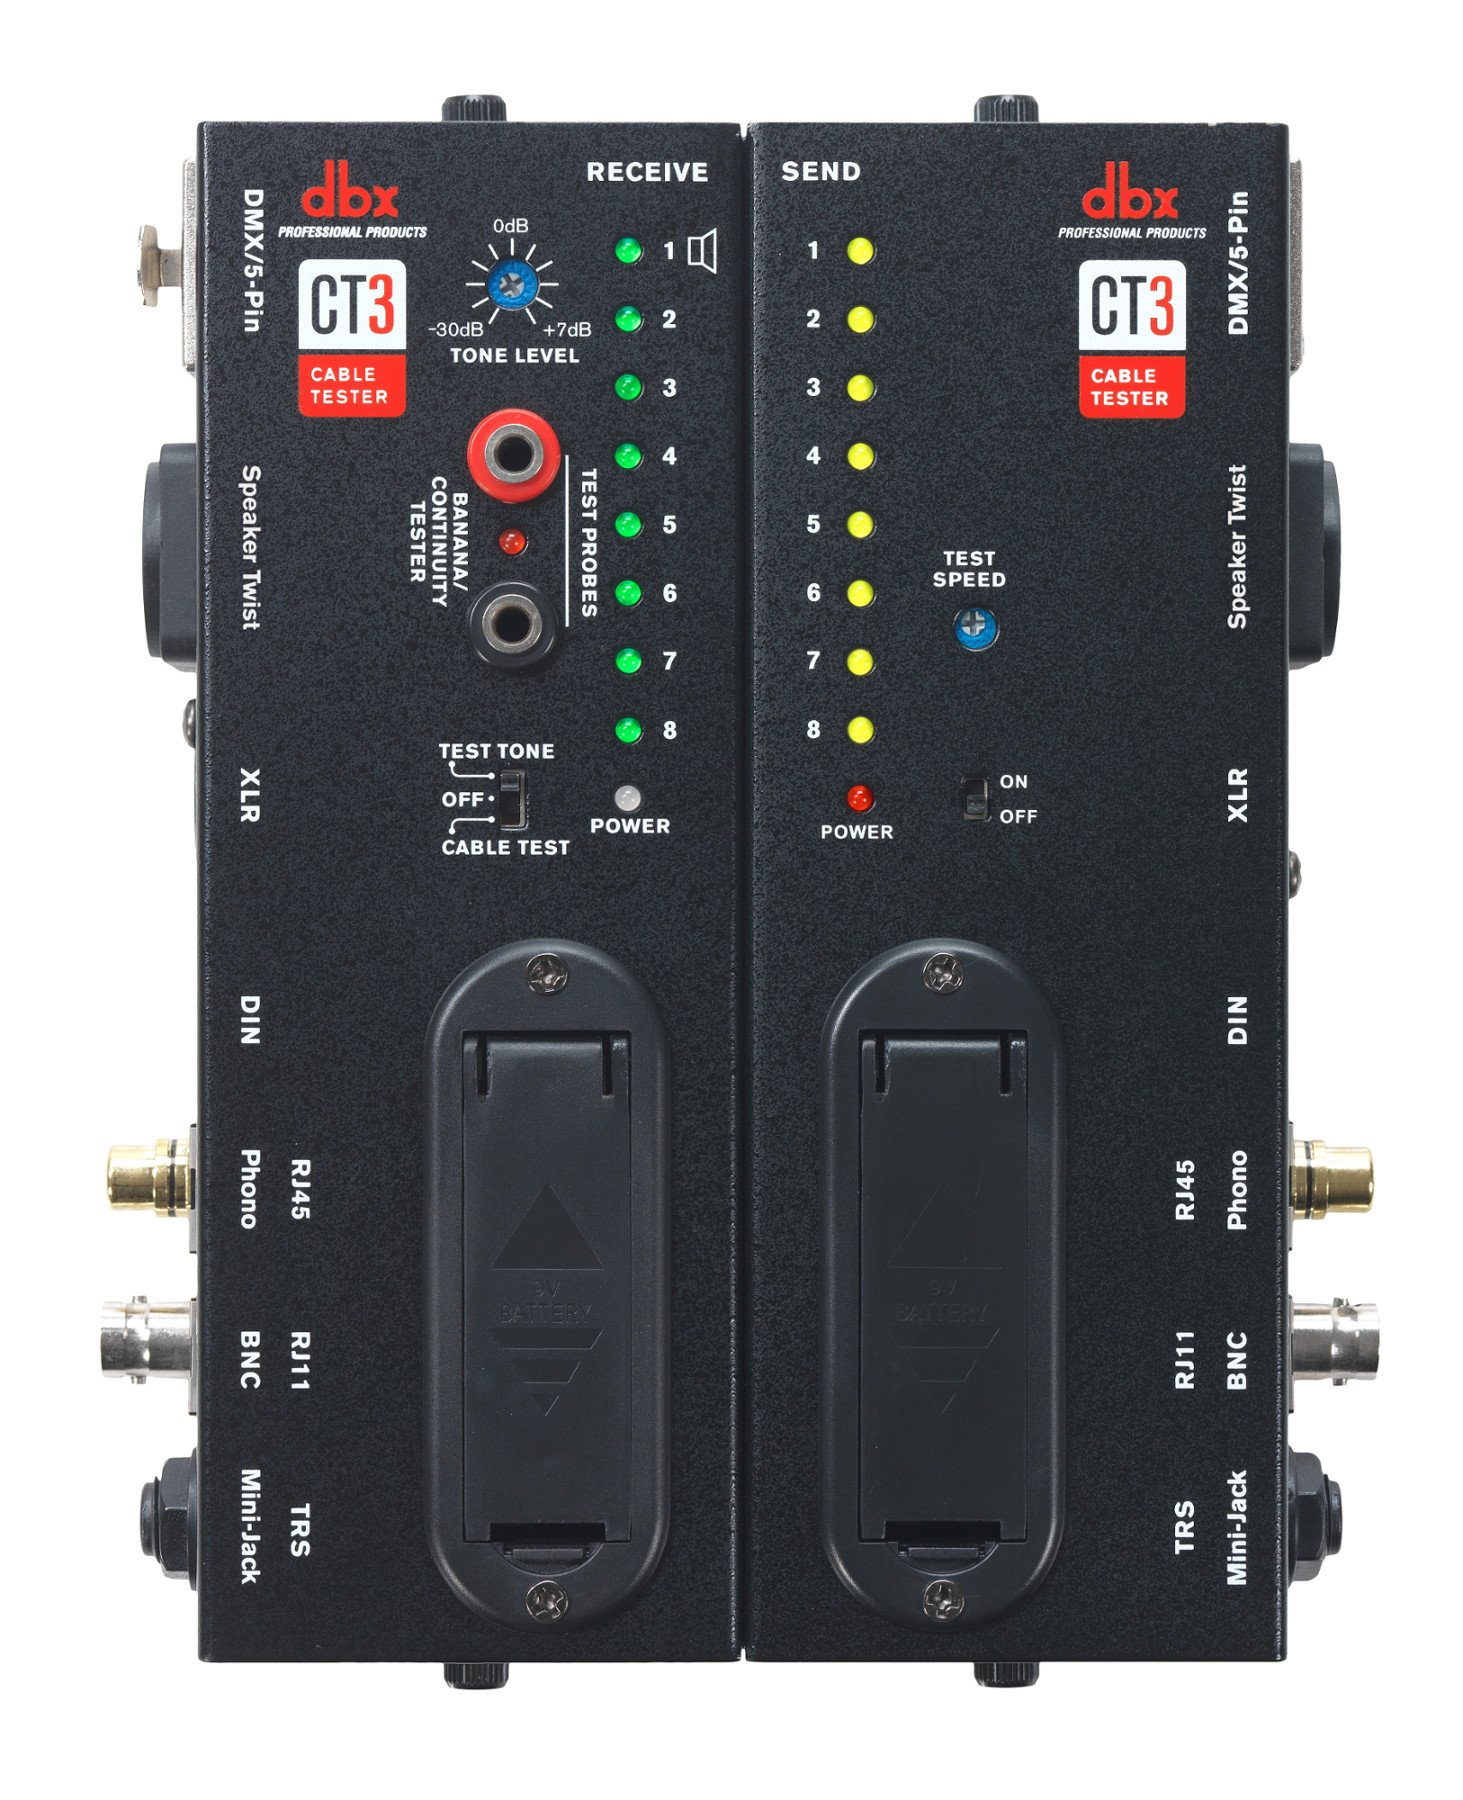 Advanced Cable Tester with Split Design